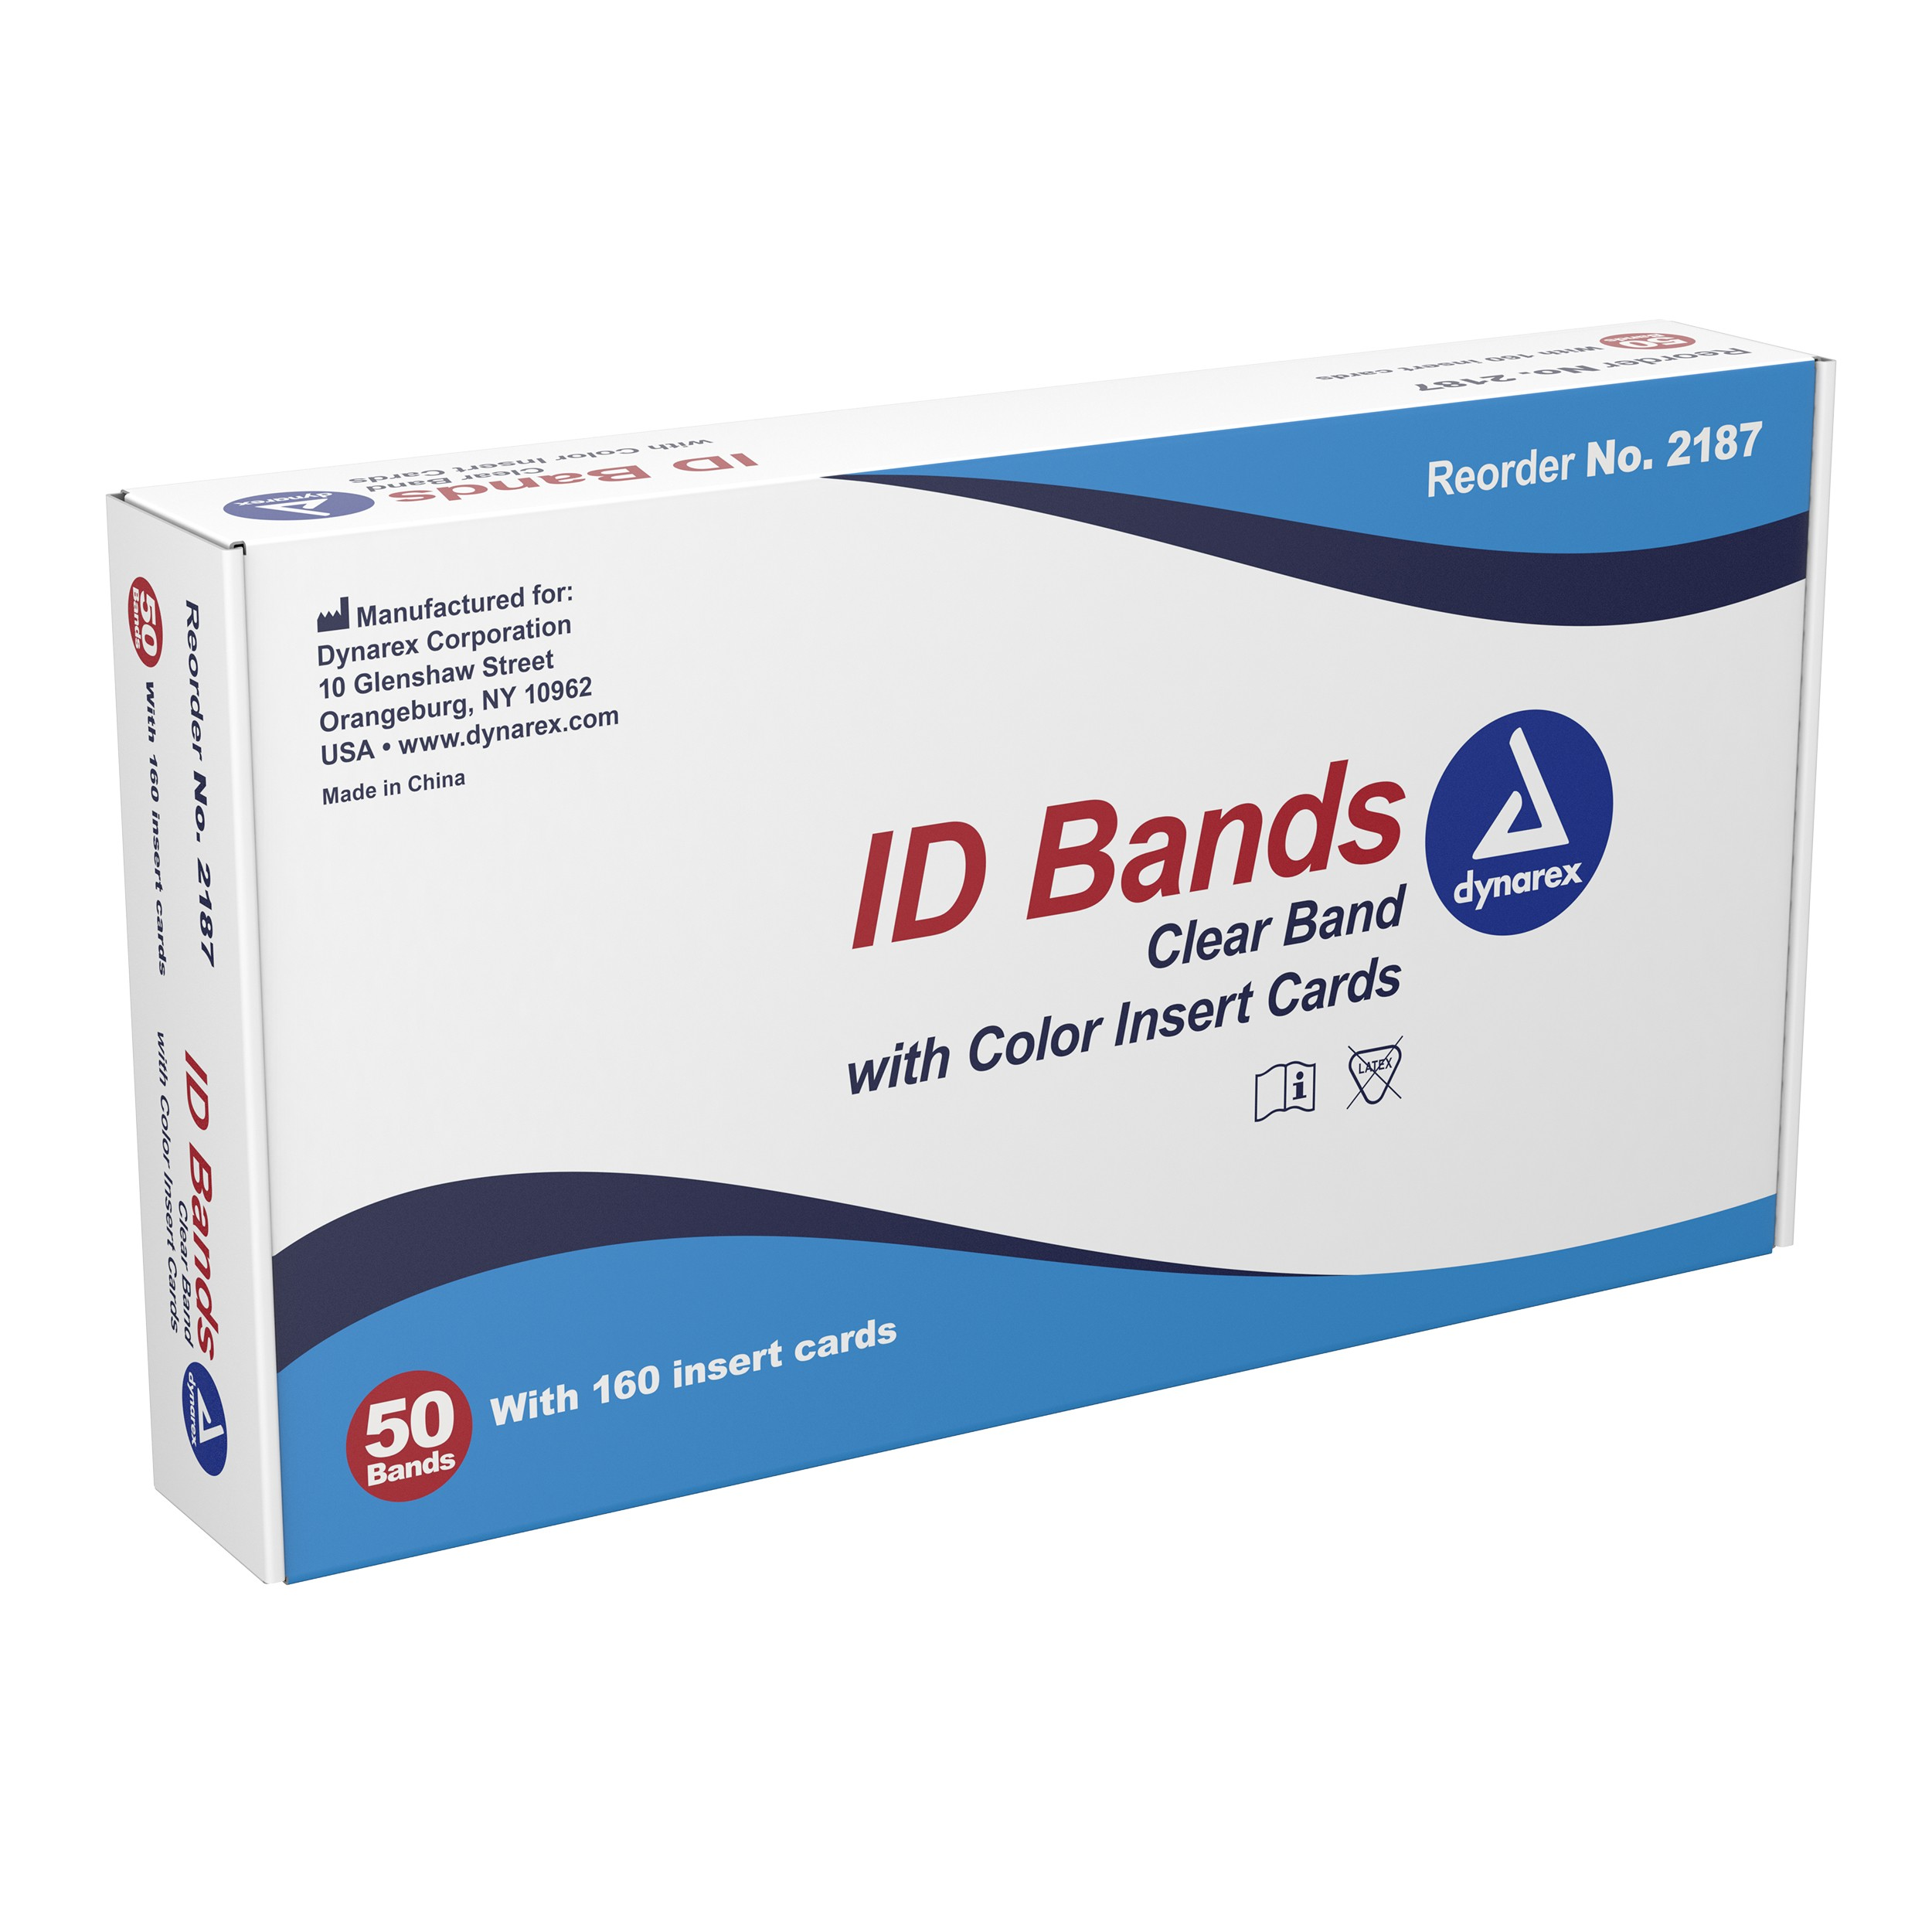 ID Bands, Clear Band w Color Card Insert, 5/50 cs